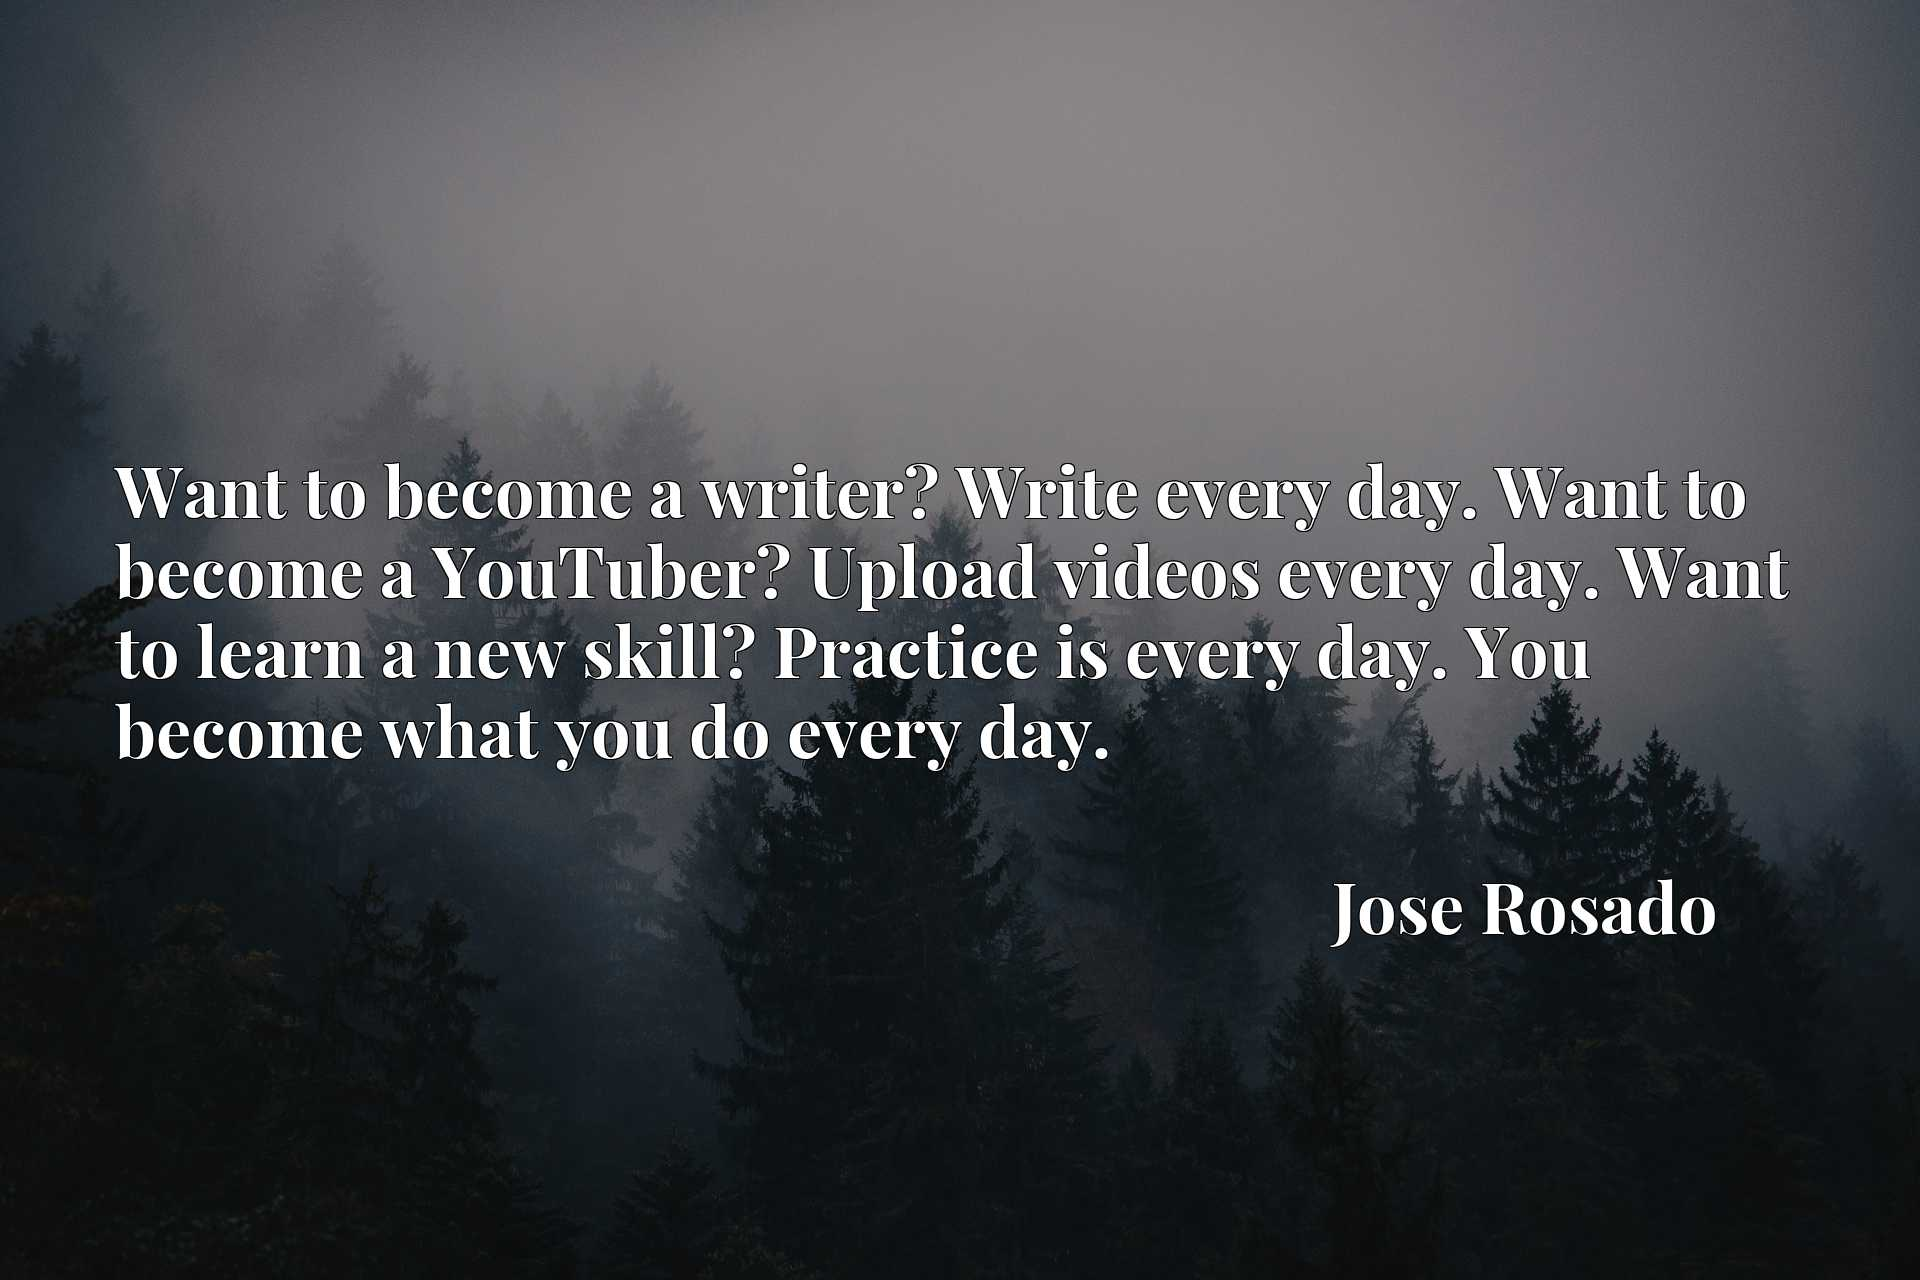 Want to become a writer? Write every day. Want to become a YouTuber? Upload videos every day. Want to learn a new skill? Practice is every day. You become what you do every day.